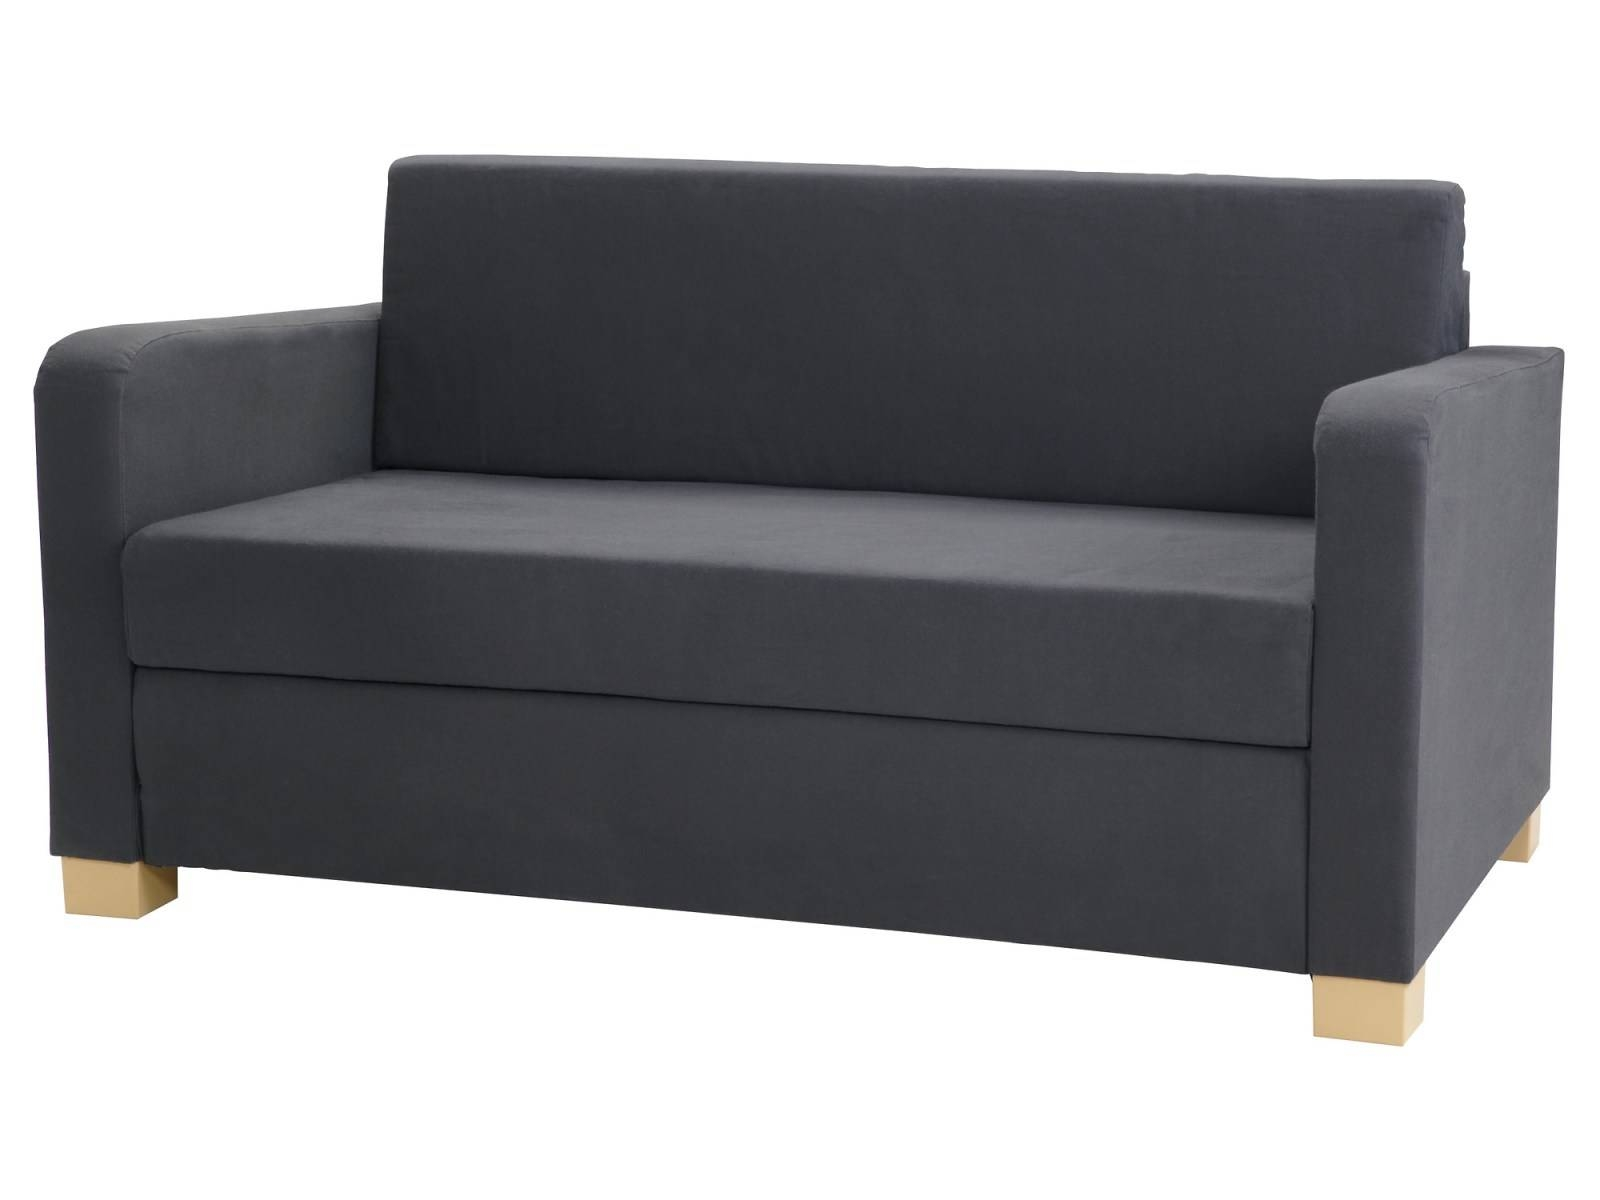 ▻ Sofa : 40 Wonderful Ikea Furniture Sofa Bed L Shaped Sofa Bed pertaining to L Shaped Sofa Bed (Image 29 of 30)